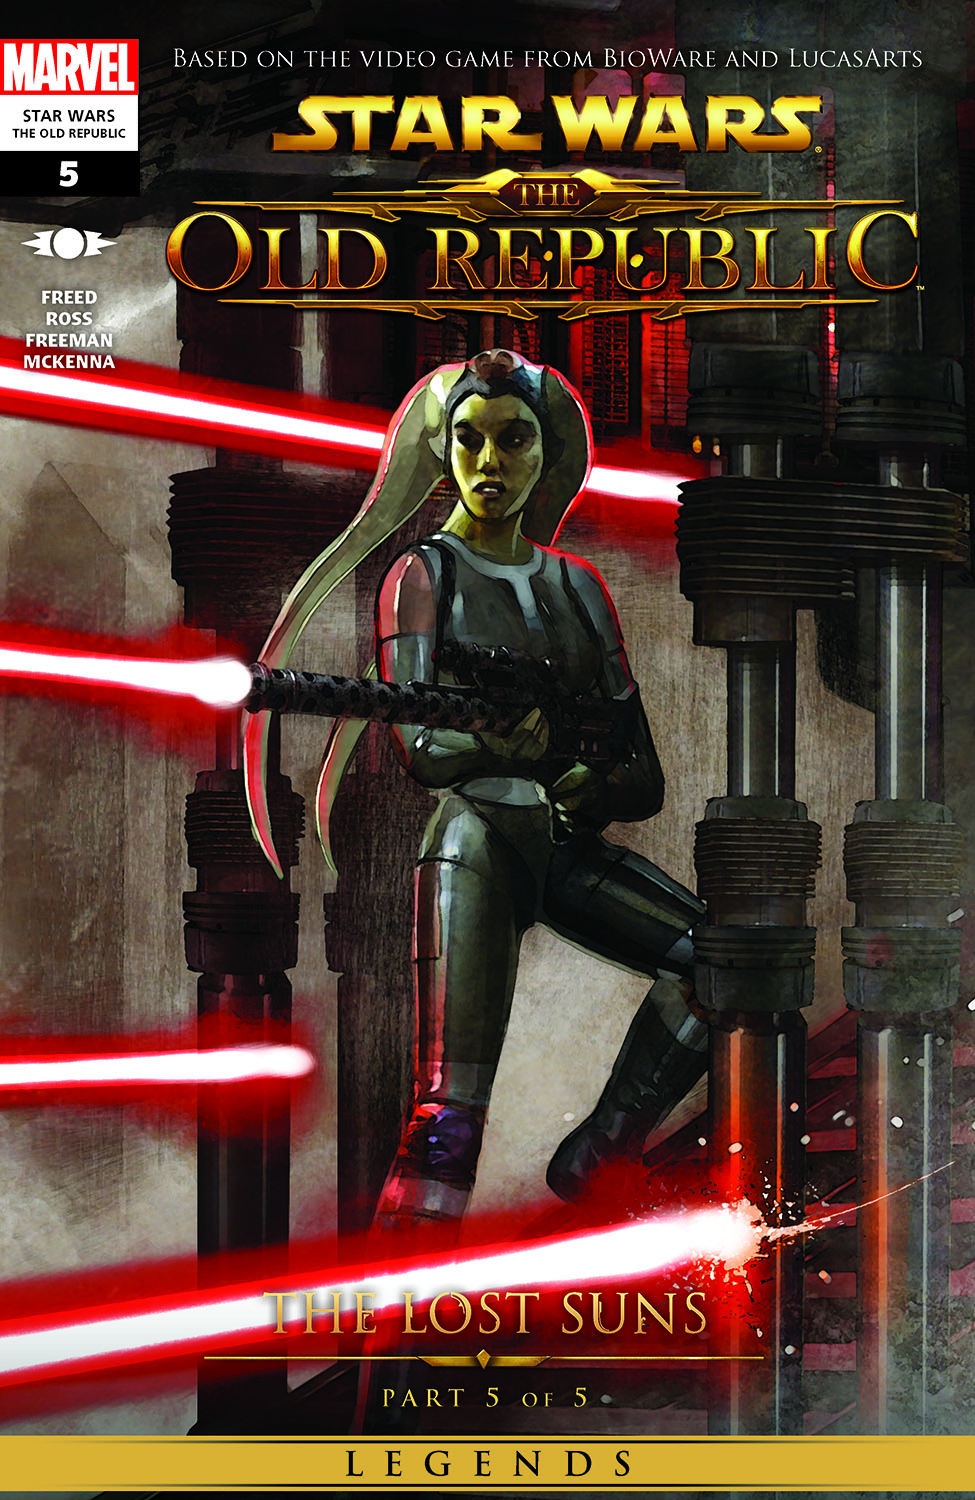 Star Wars: The Old Republic - The Lost Suns (2011) #5